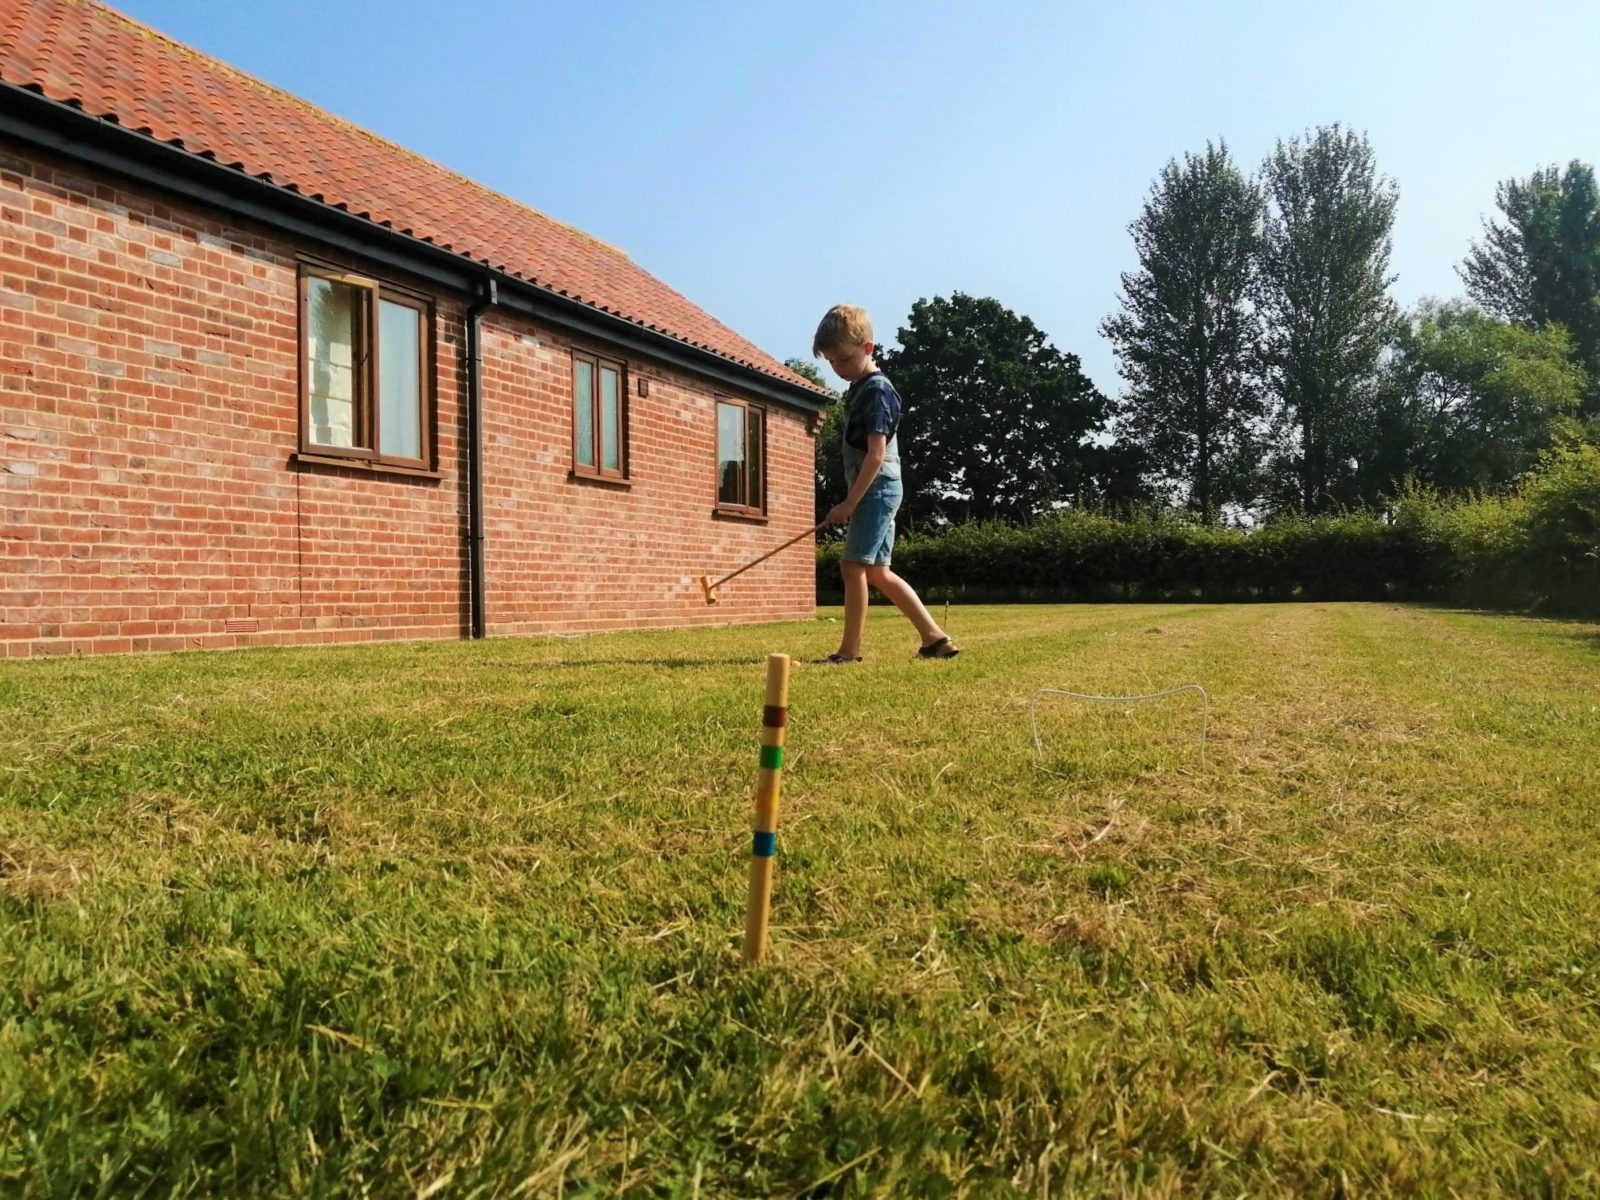 Croquet The Mulberry